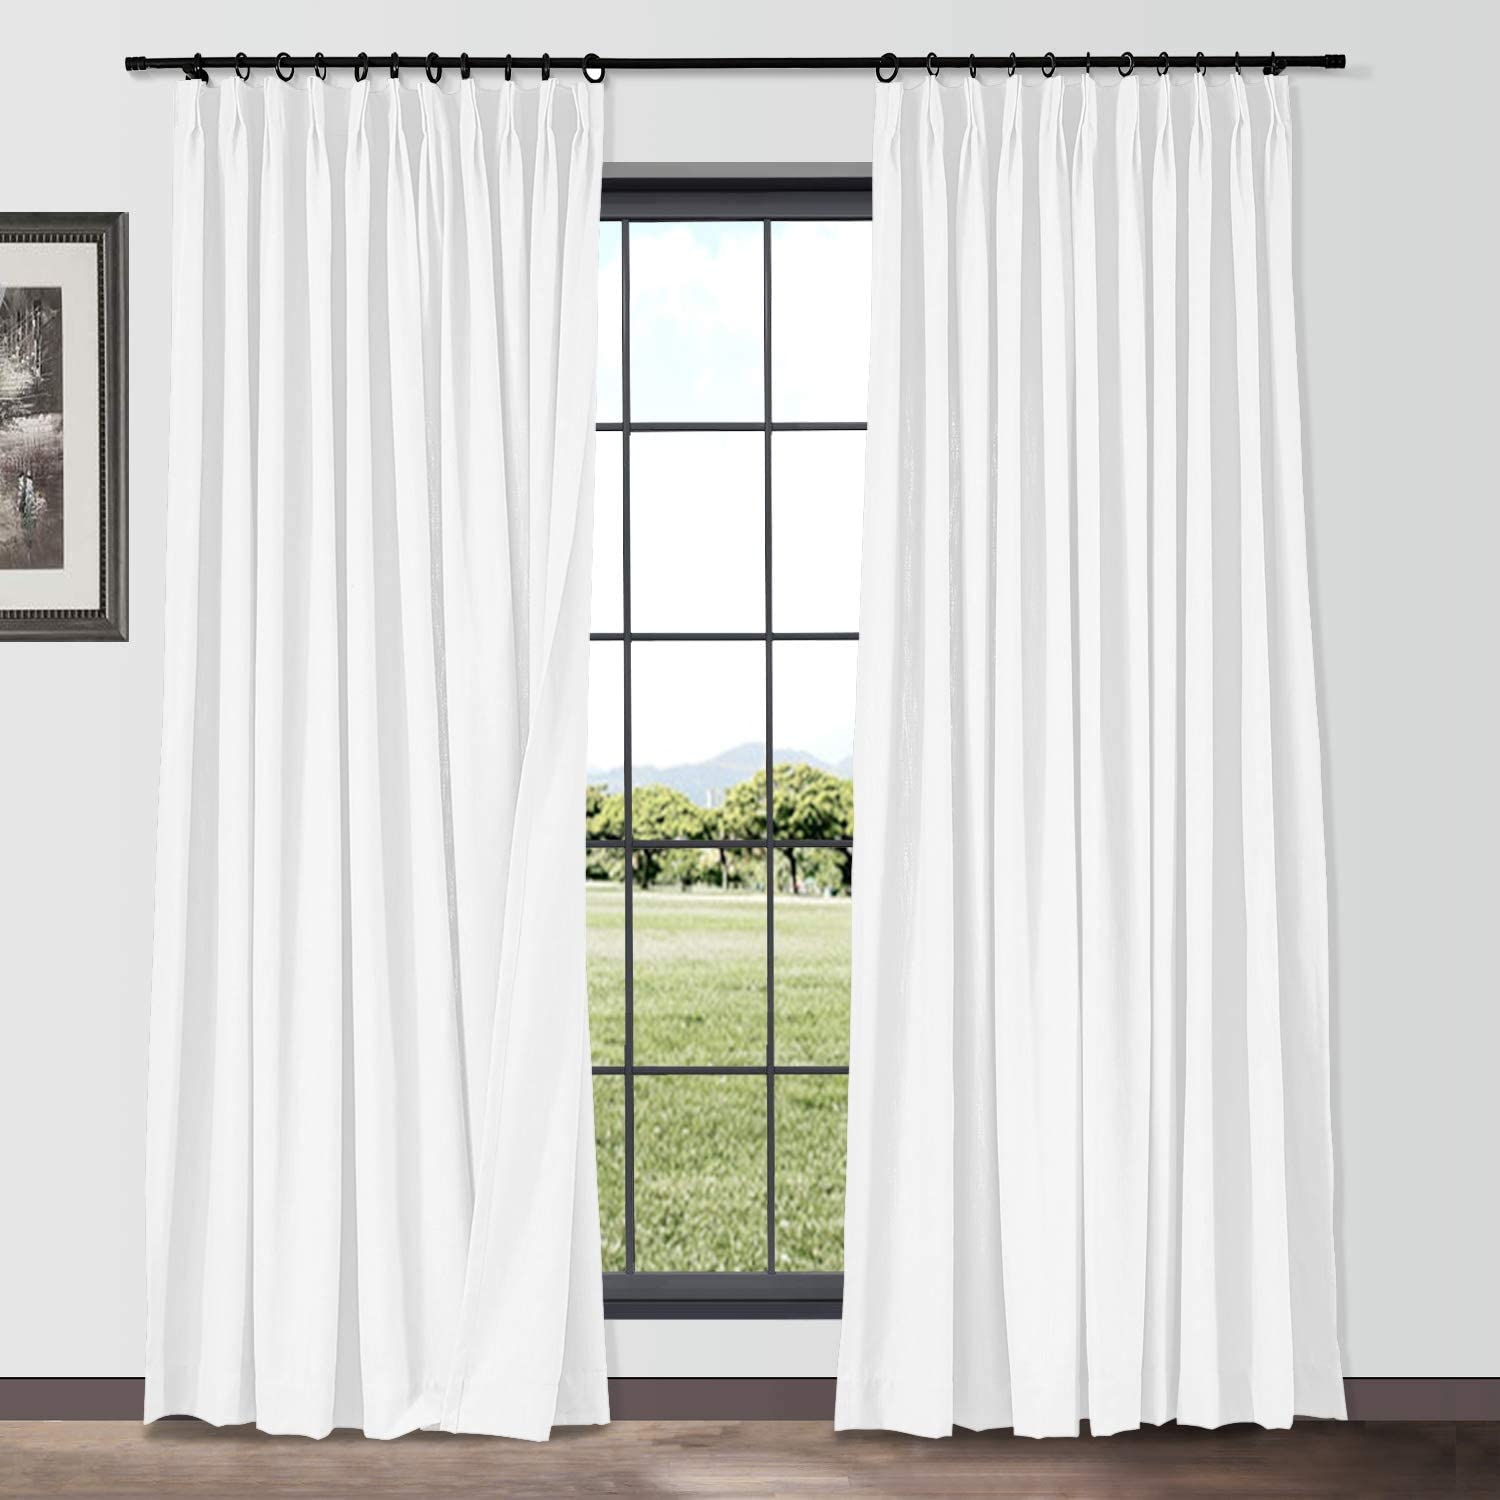 TWOPAGES Cotton Linen Curtain Drapery Extra 150 Widt security Inches Max 48% OFF Wide